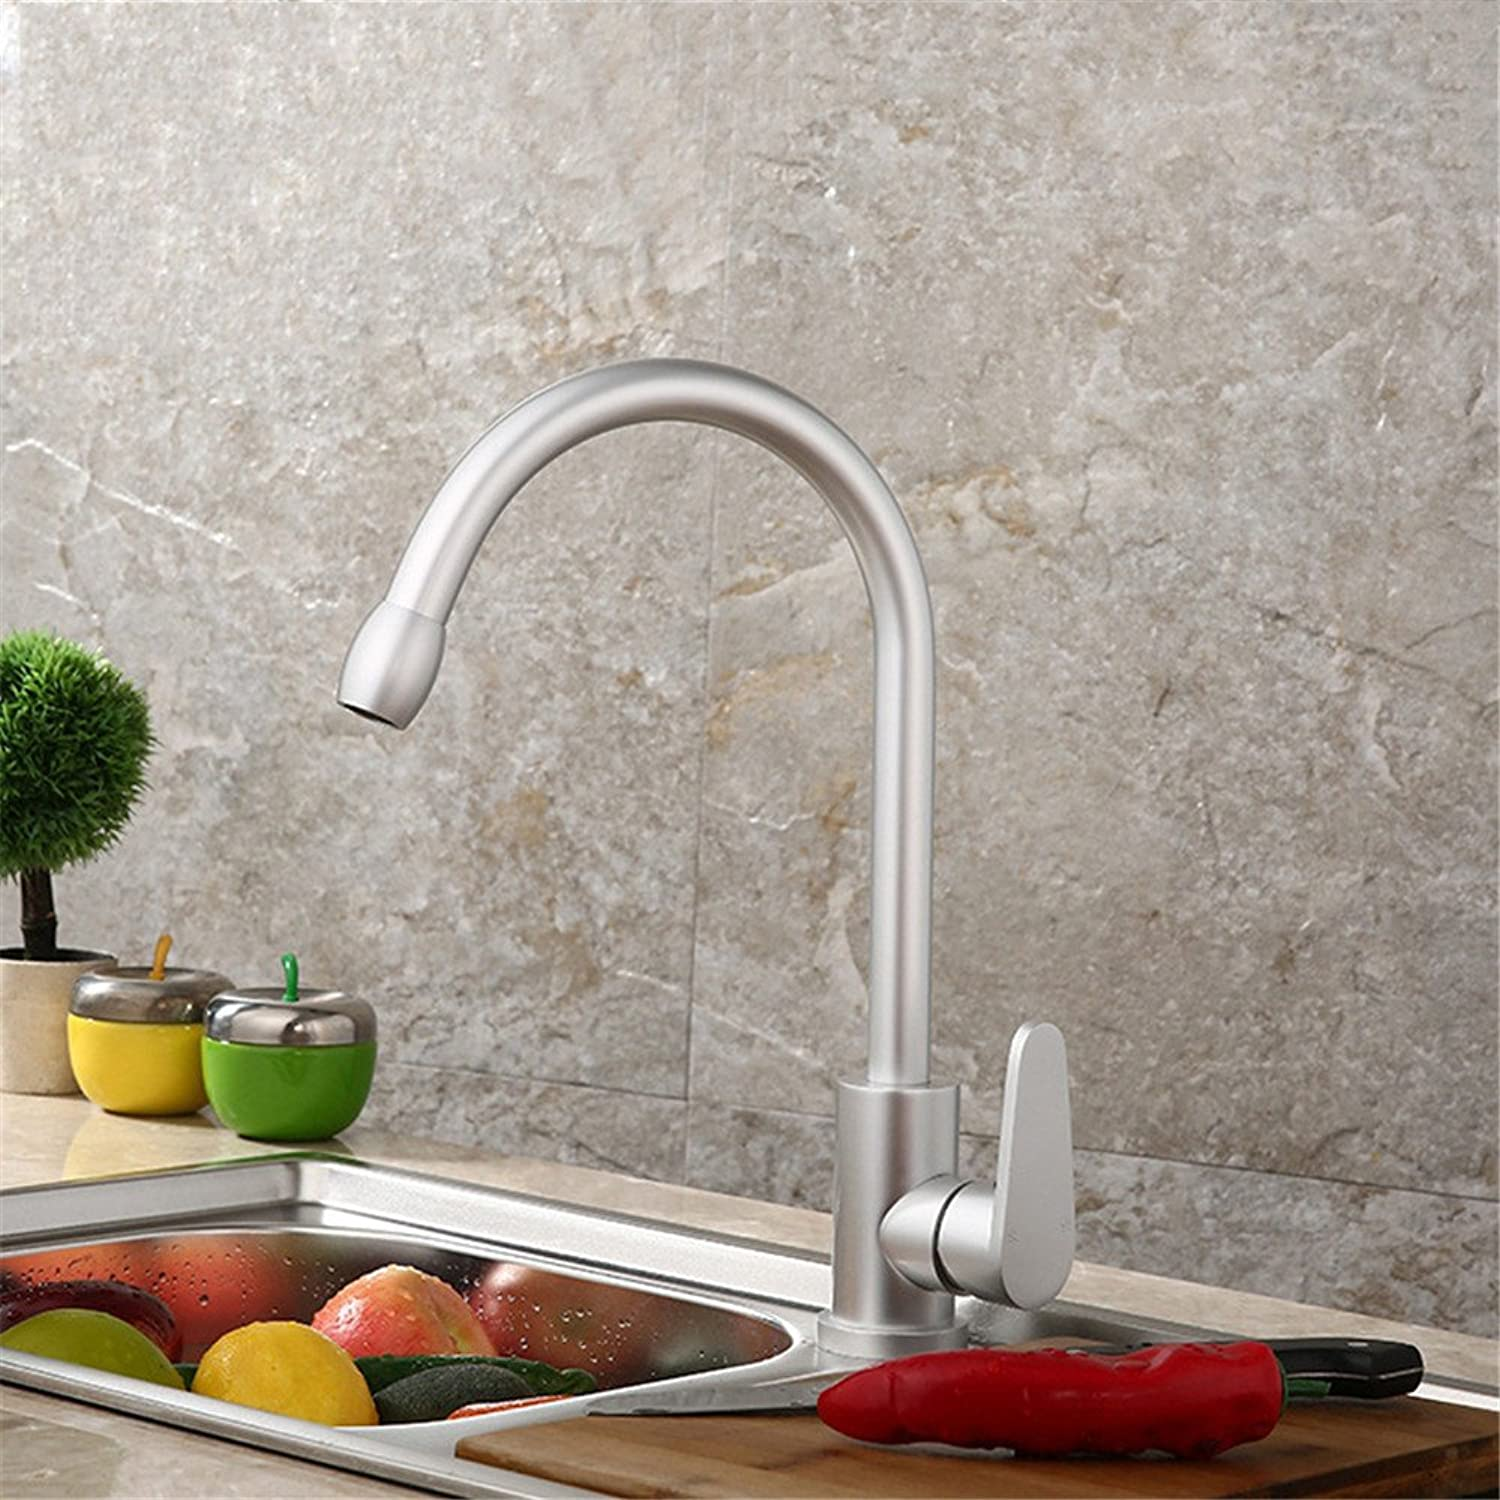 TYAW-SHOP Kitchen faucet sink basin of hot and cold dishes, lead-free toilet-table tub bath